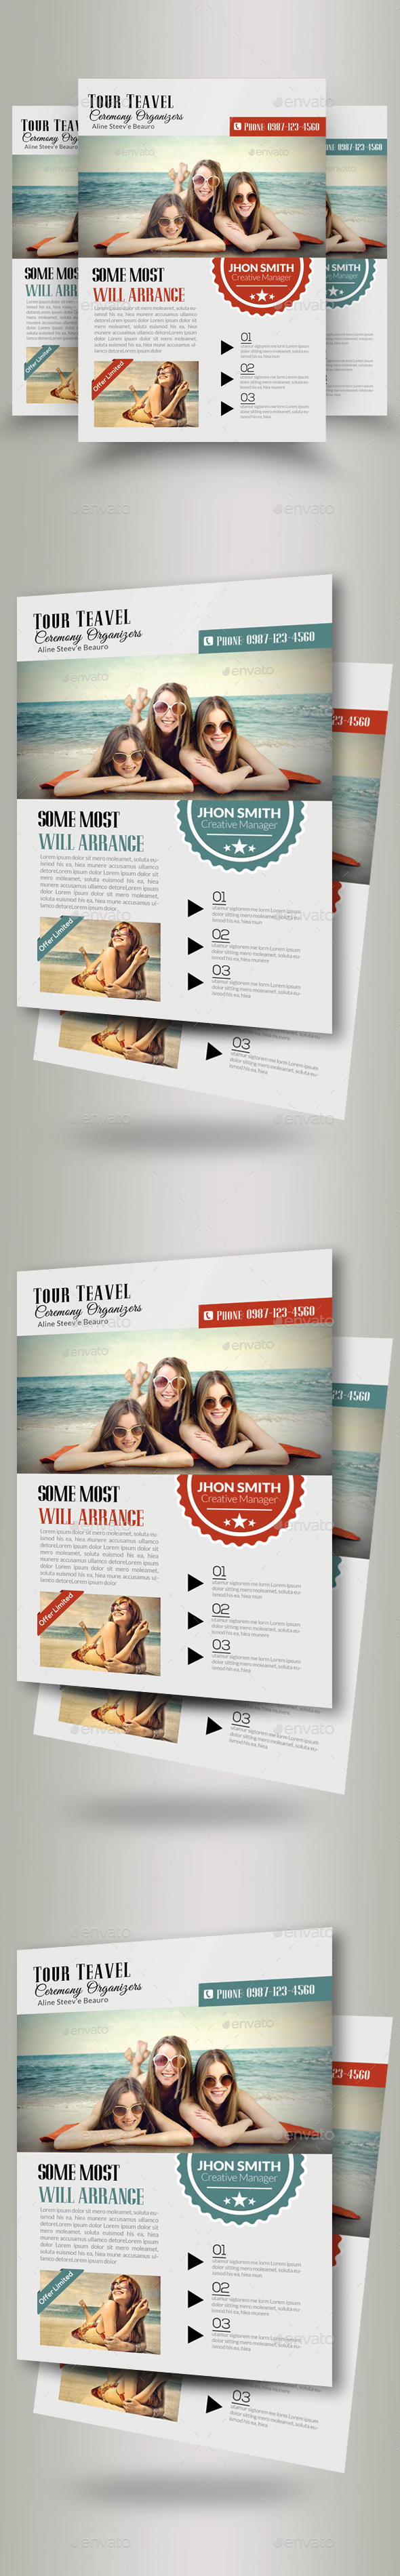 Tour and Travel Flyer Template - Flyers Print Templates